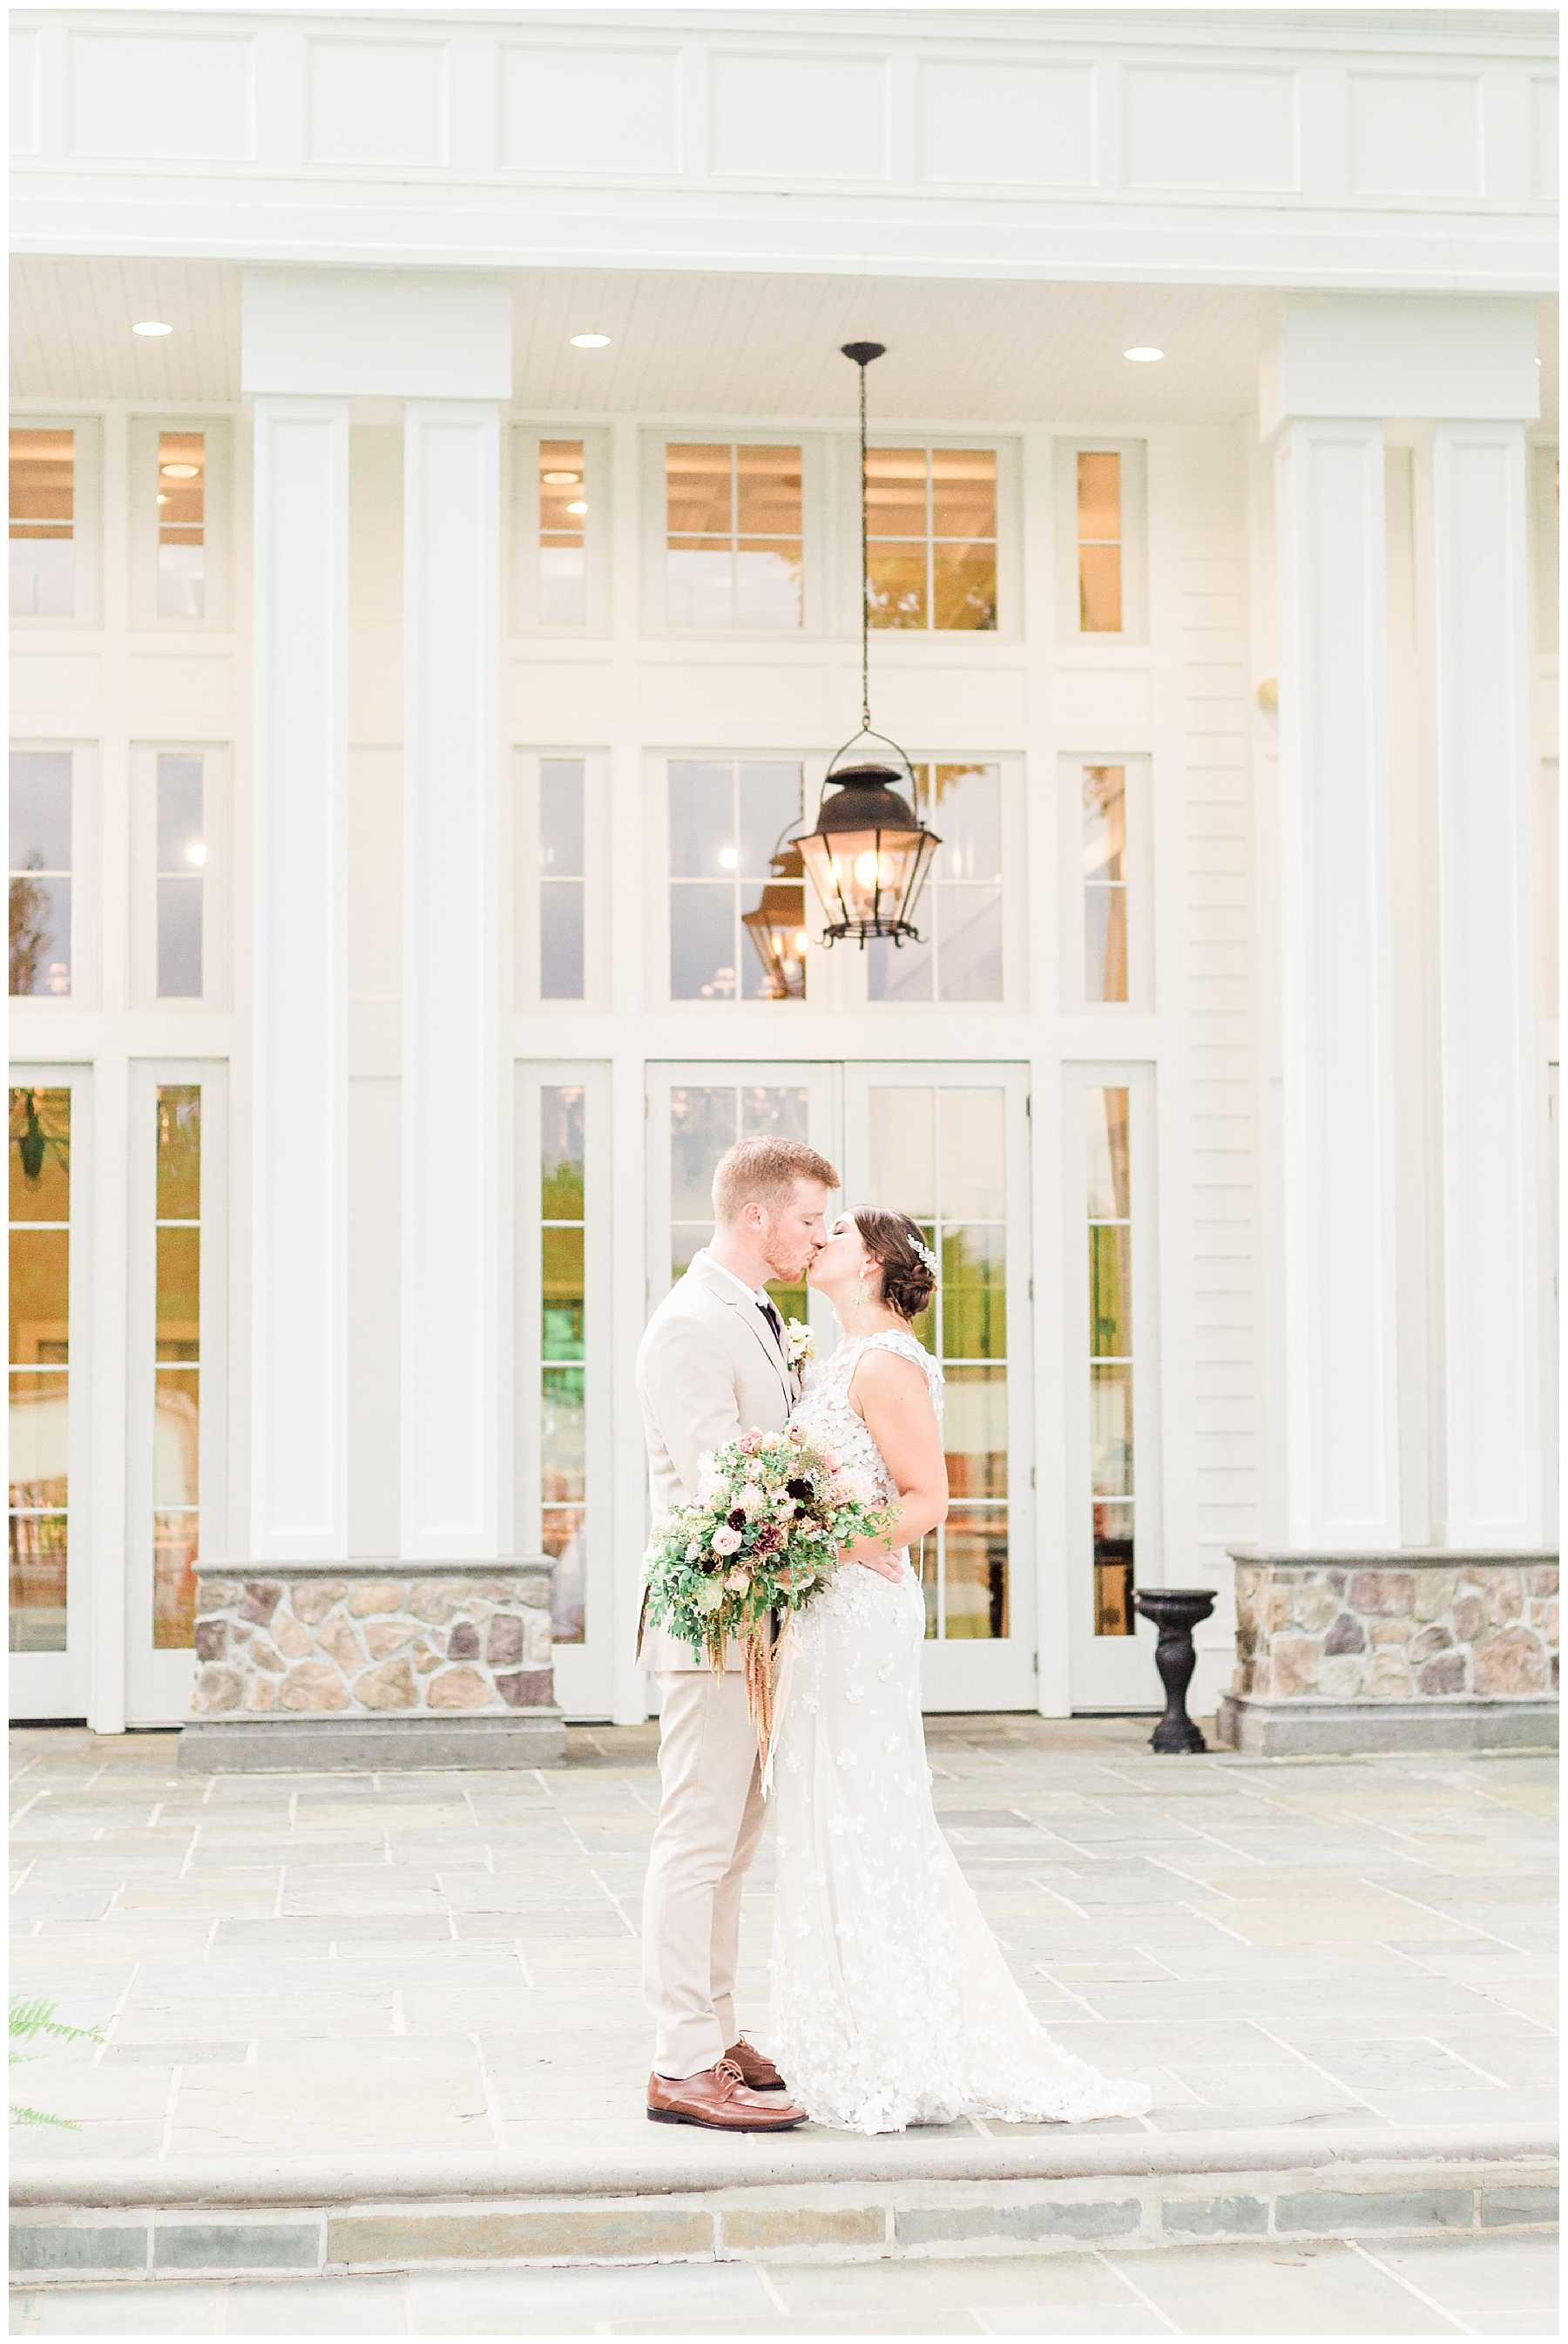 Classy Ryland Inn light and airy wedding photographer